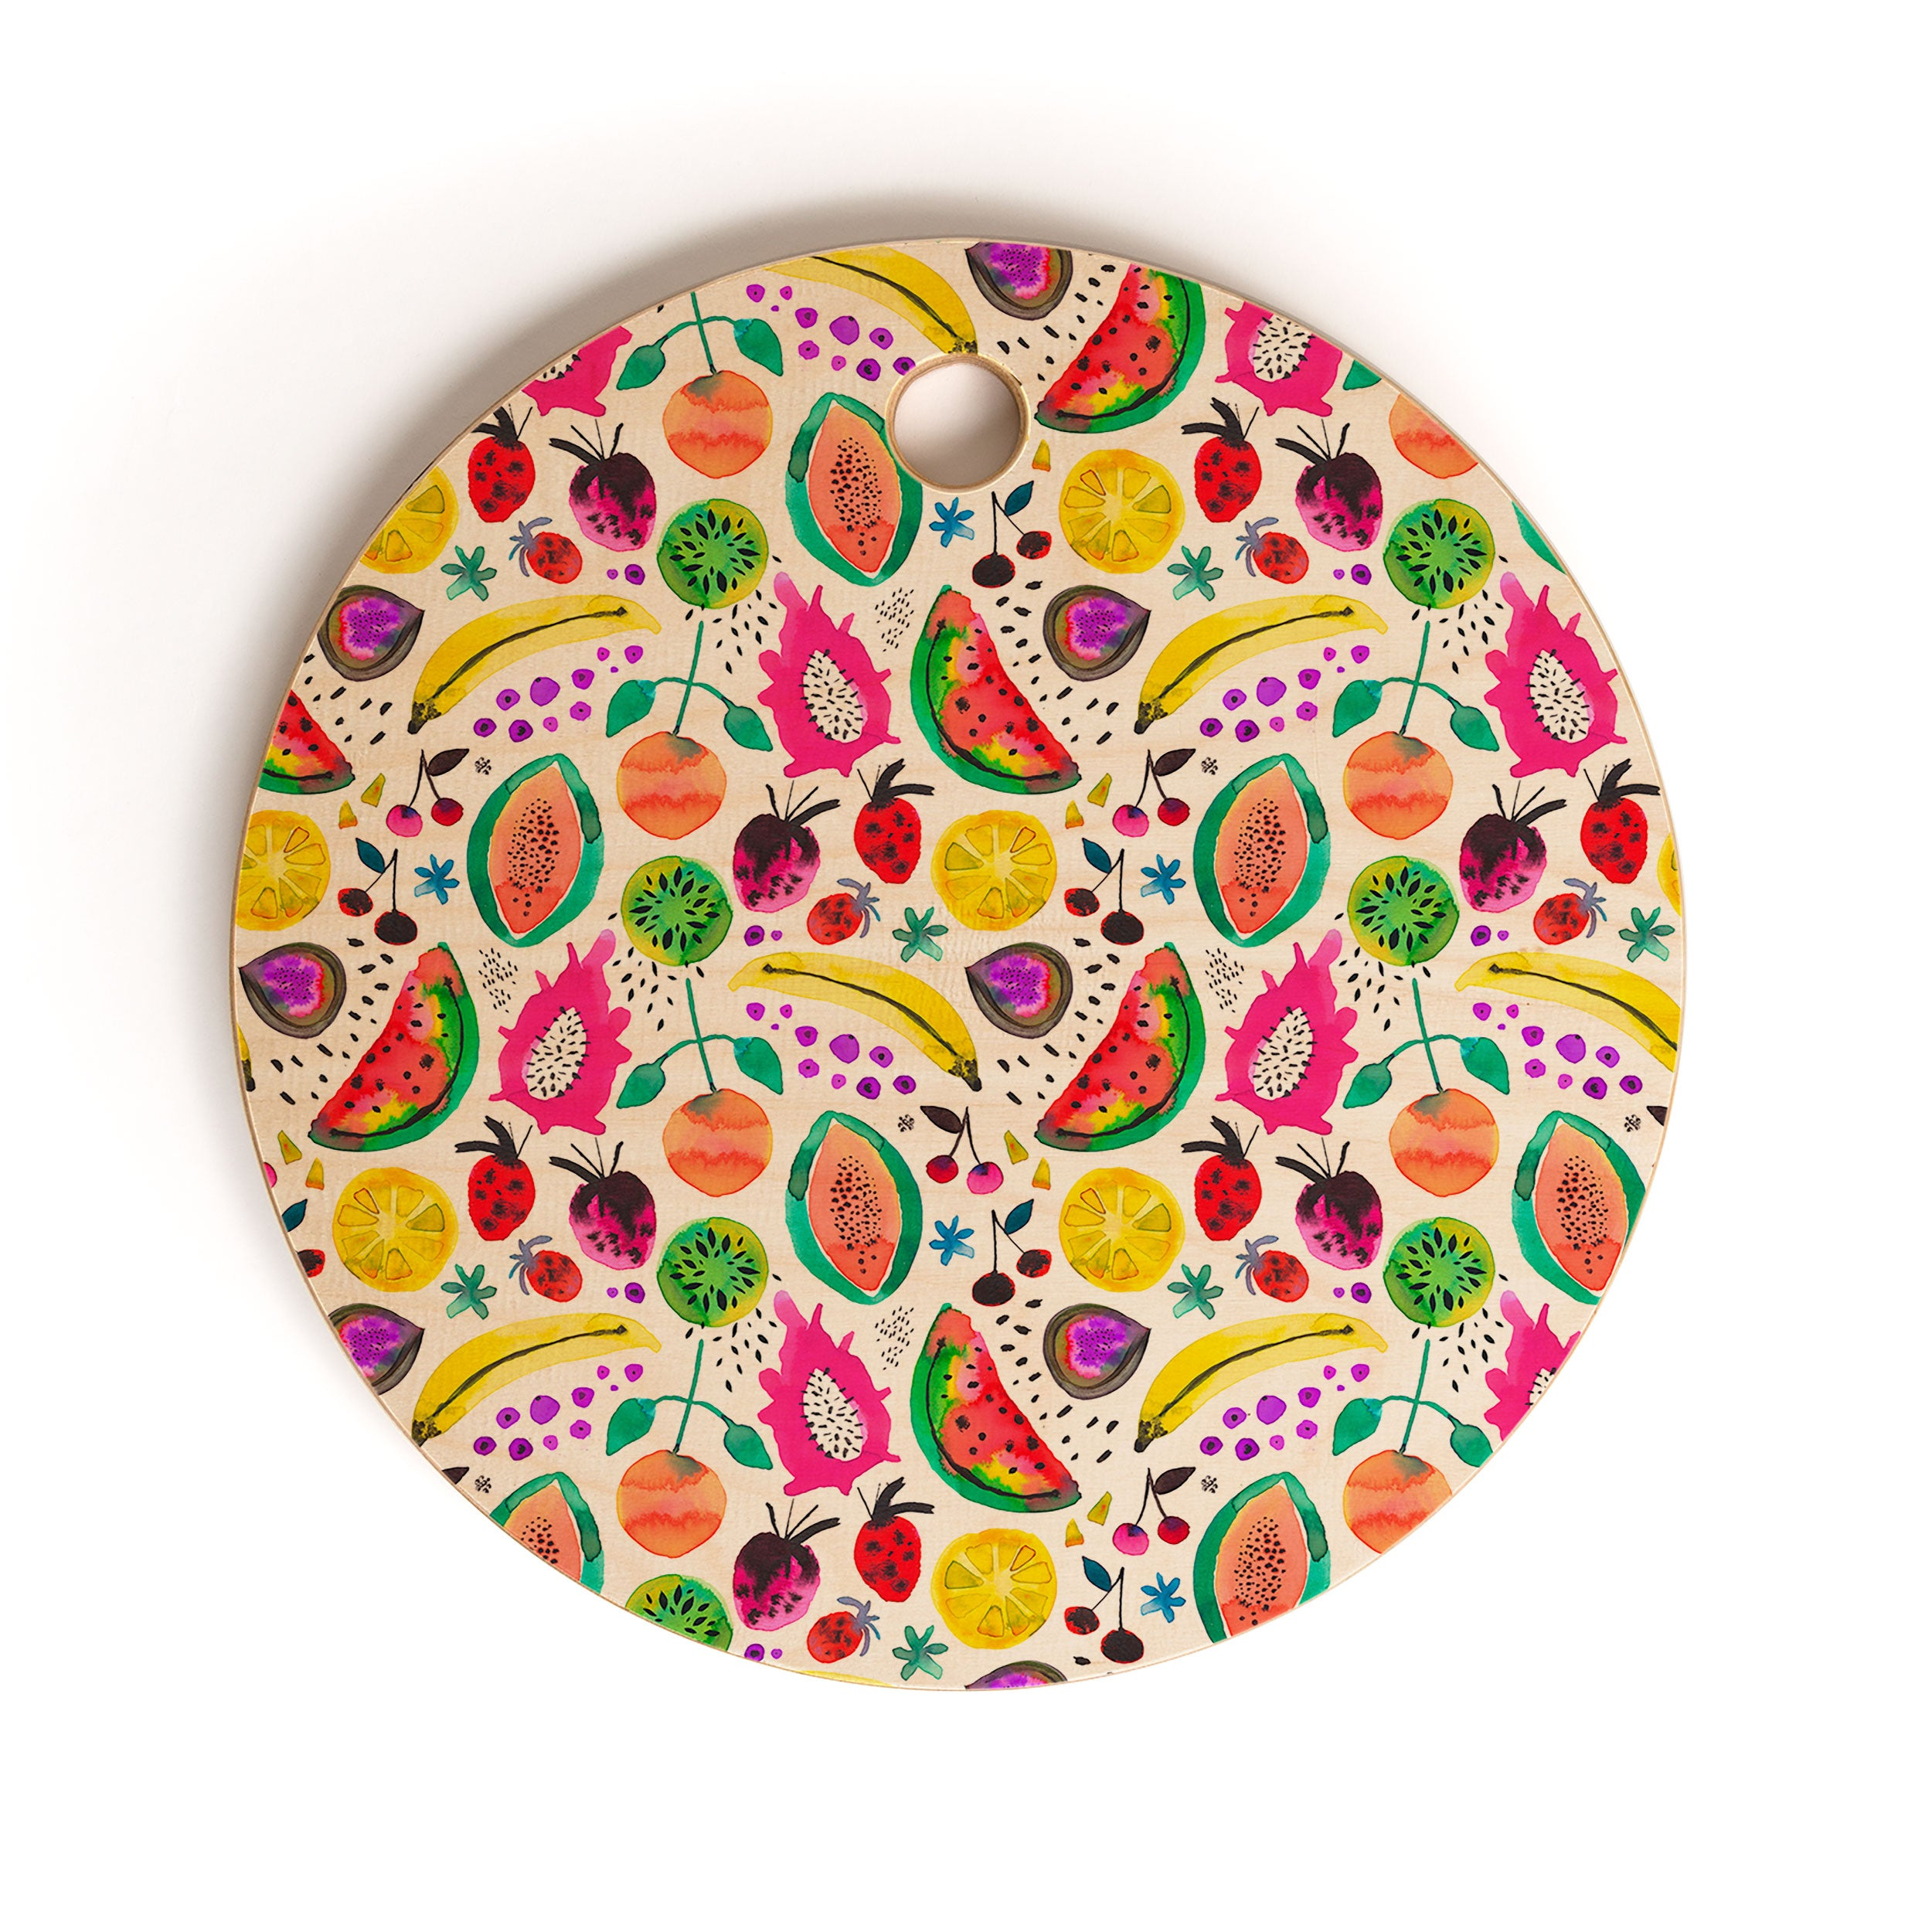 Ninola Design Fruits Pitaya Papaya Pawpaw Cutting Board Round